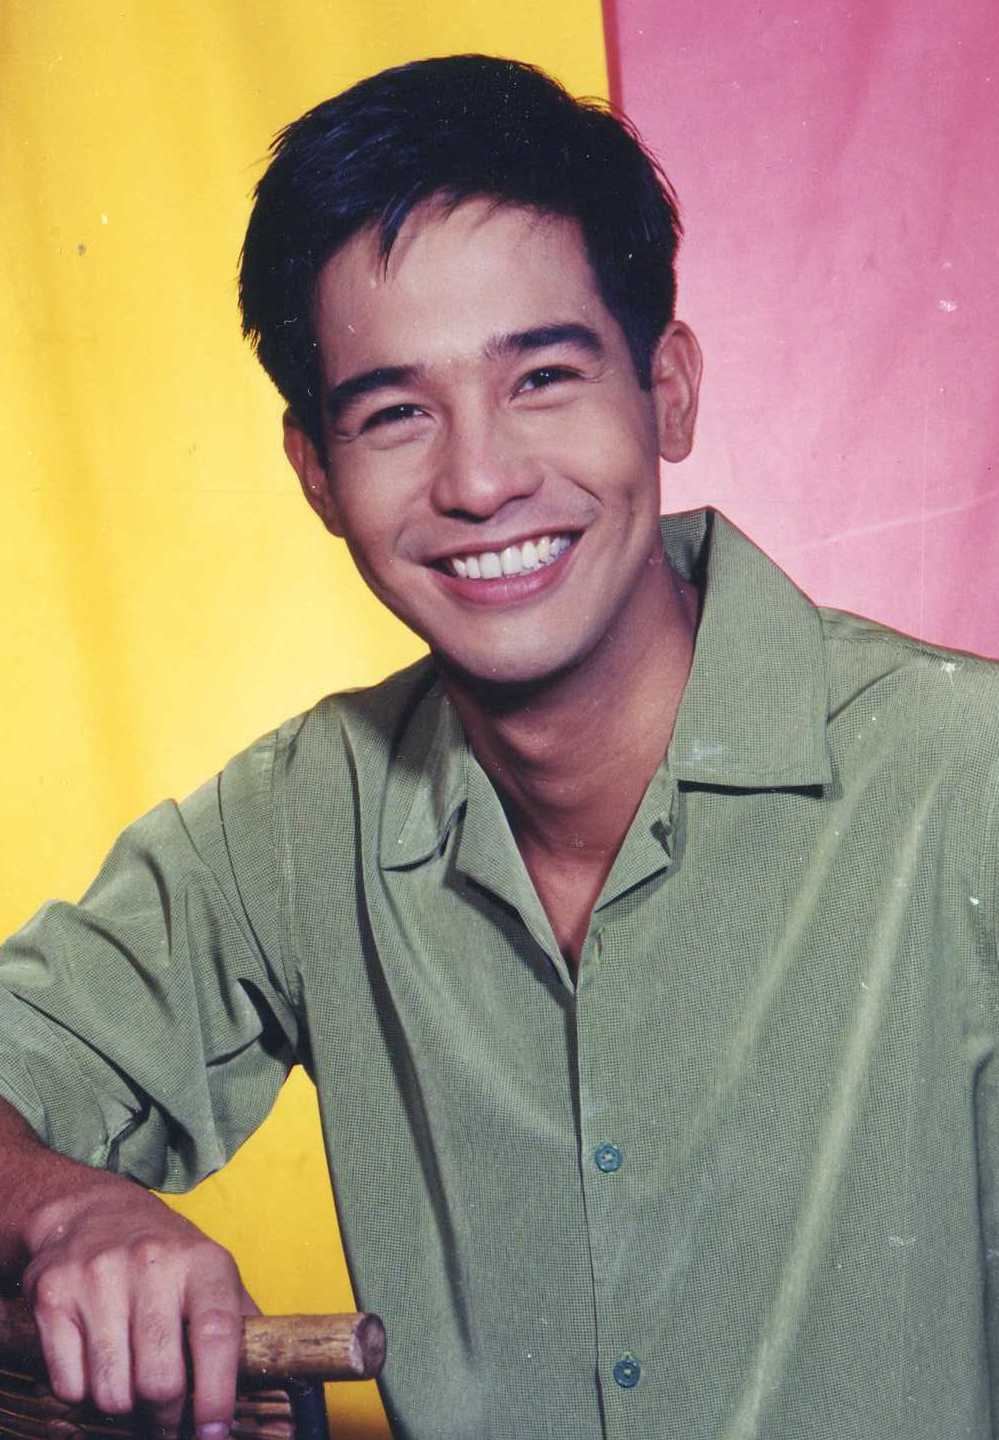 Man Central: Rico Yan: We Remember The Boy